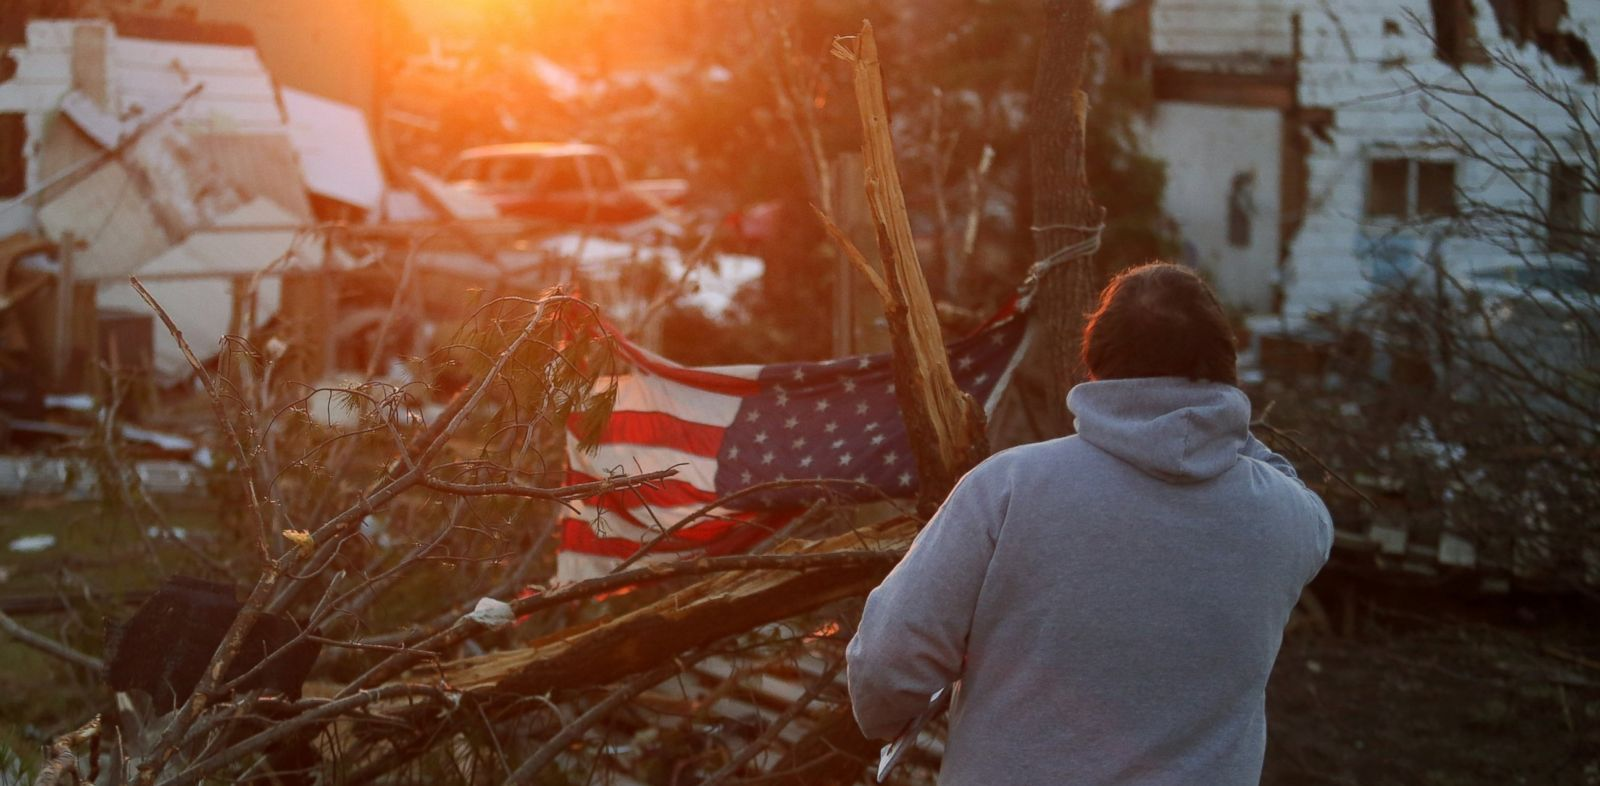 PHOTO: A person stands amongst damaged buildings along Washington Road in the aftermath of a tornado, Nov. 18, 2013 in Washington, Ill.